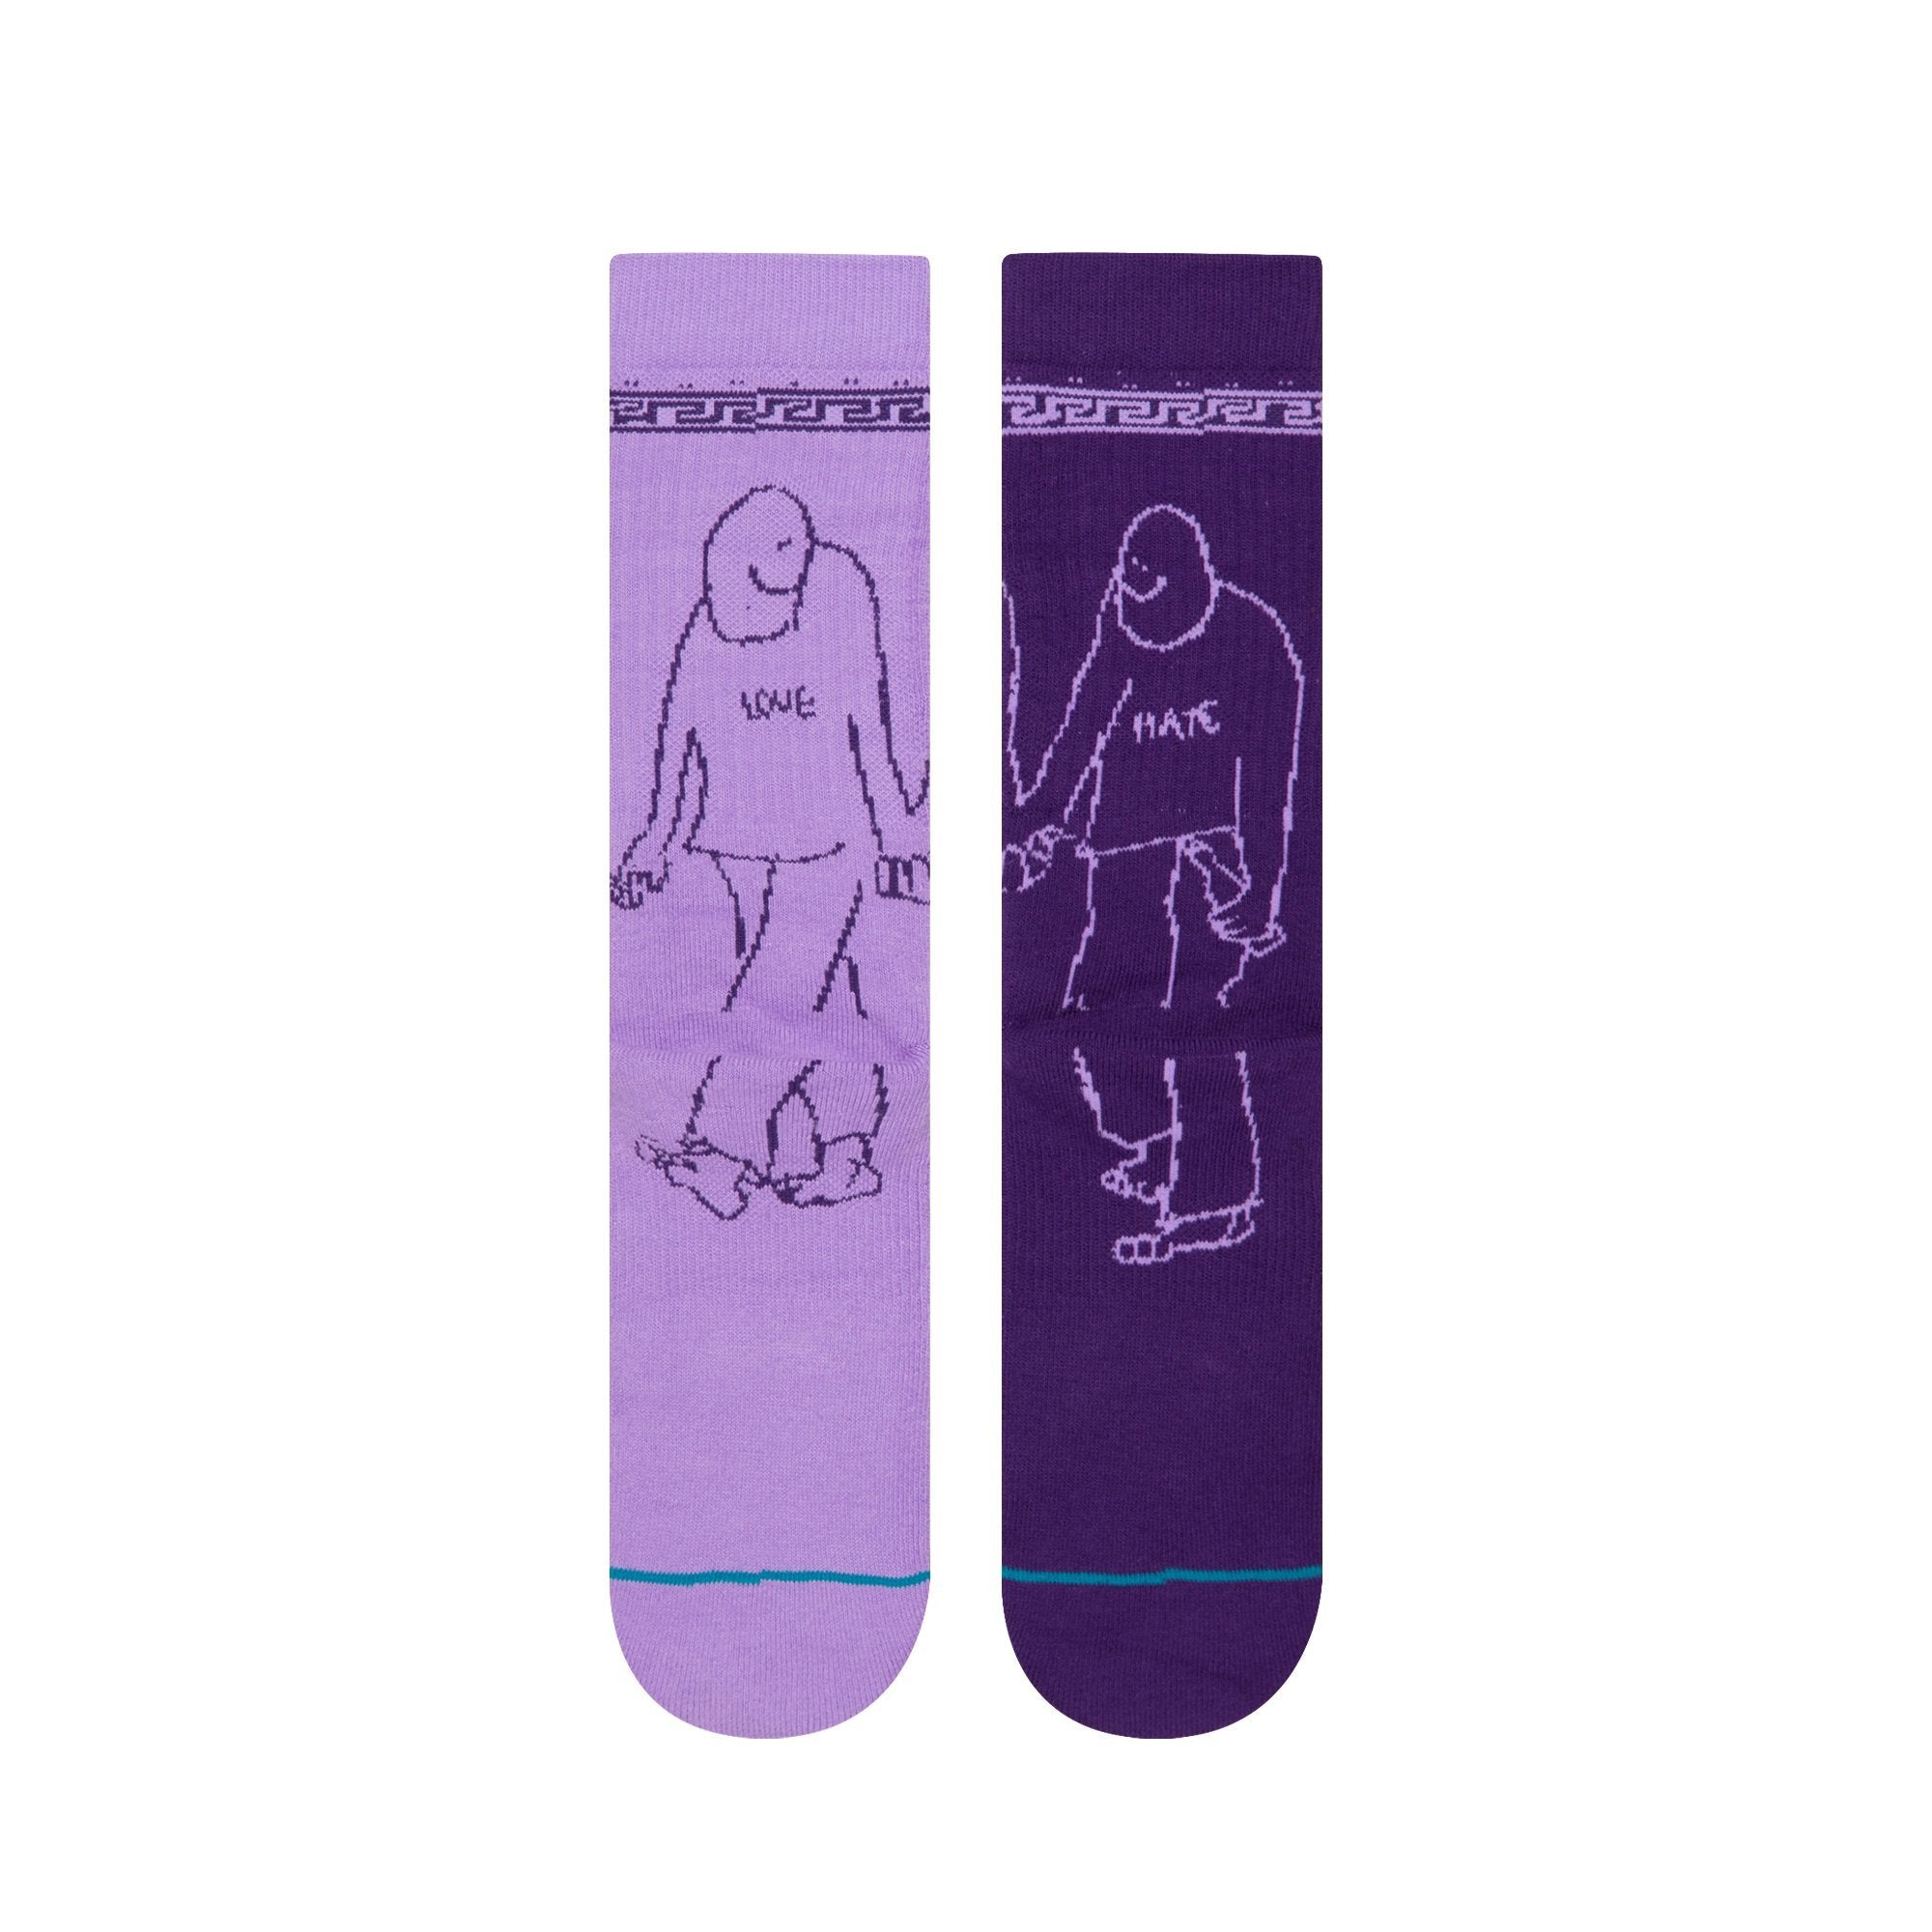 Stance Love Hate Crew Socks in Purple